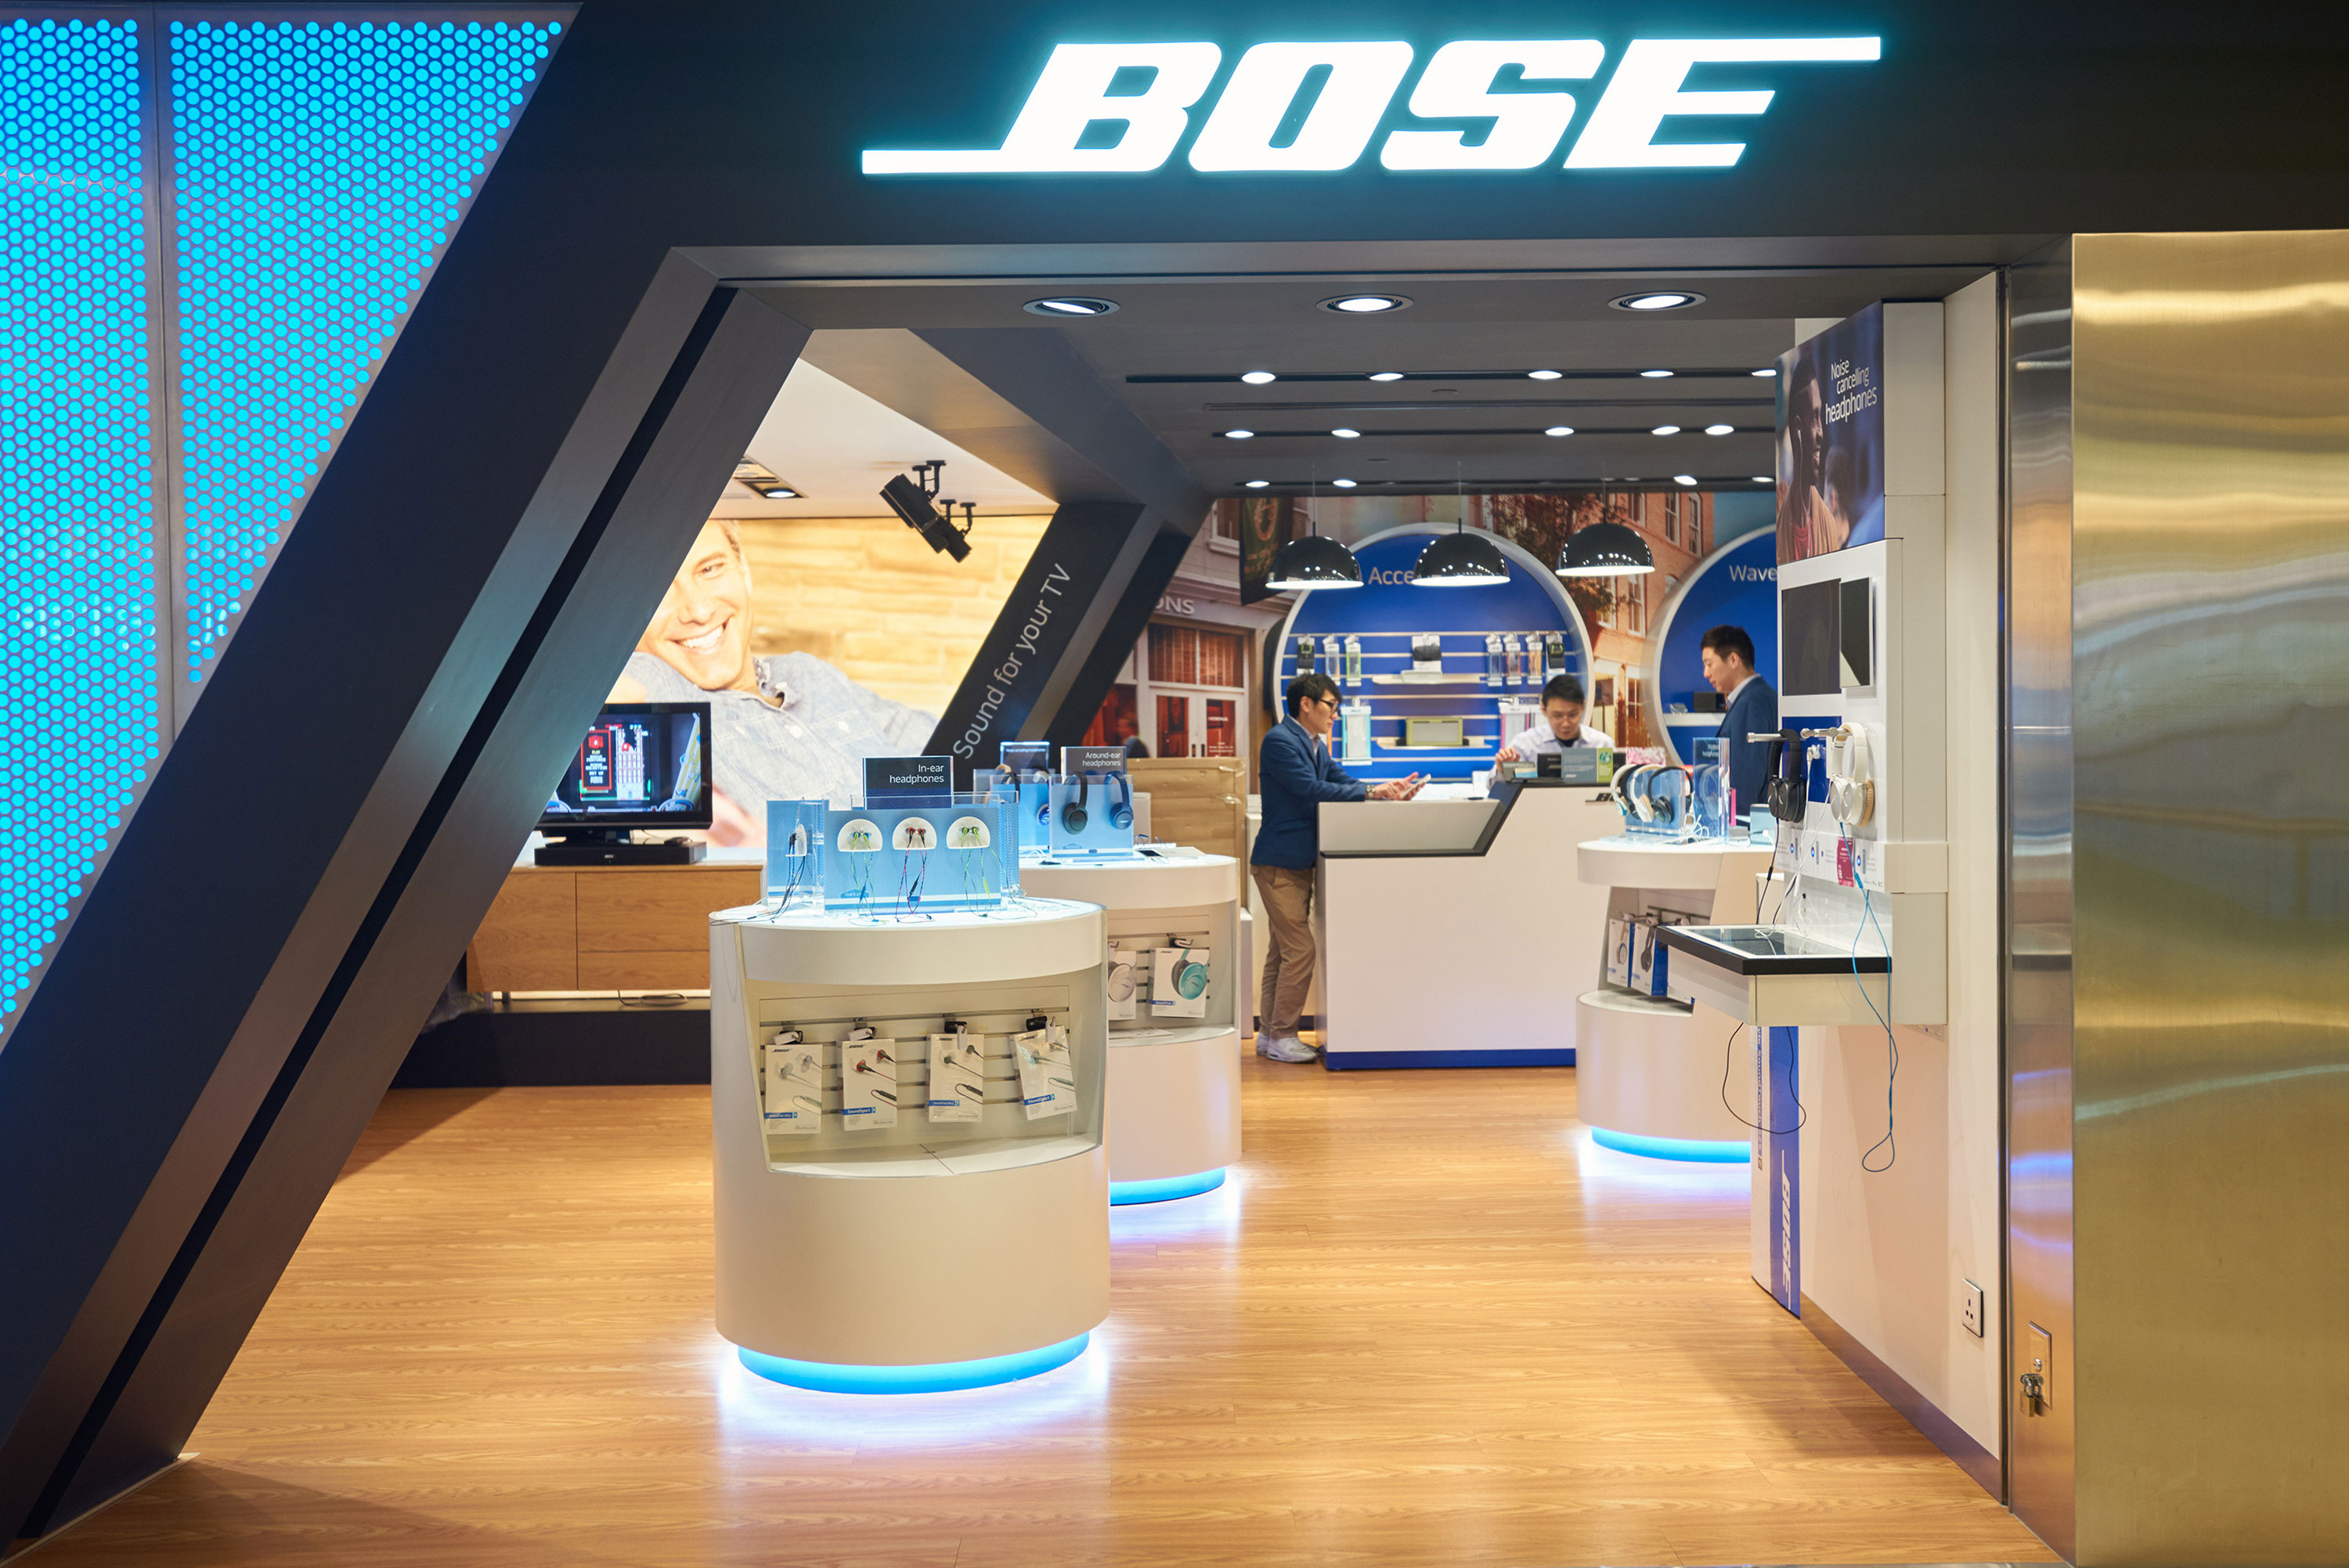 Bose is closing more than 100 stores worldwide